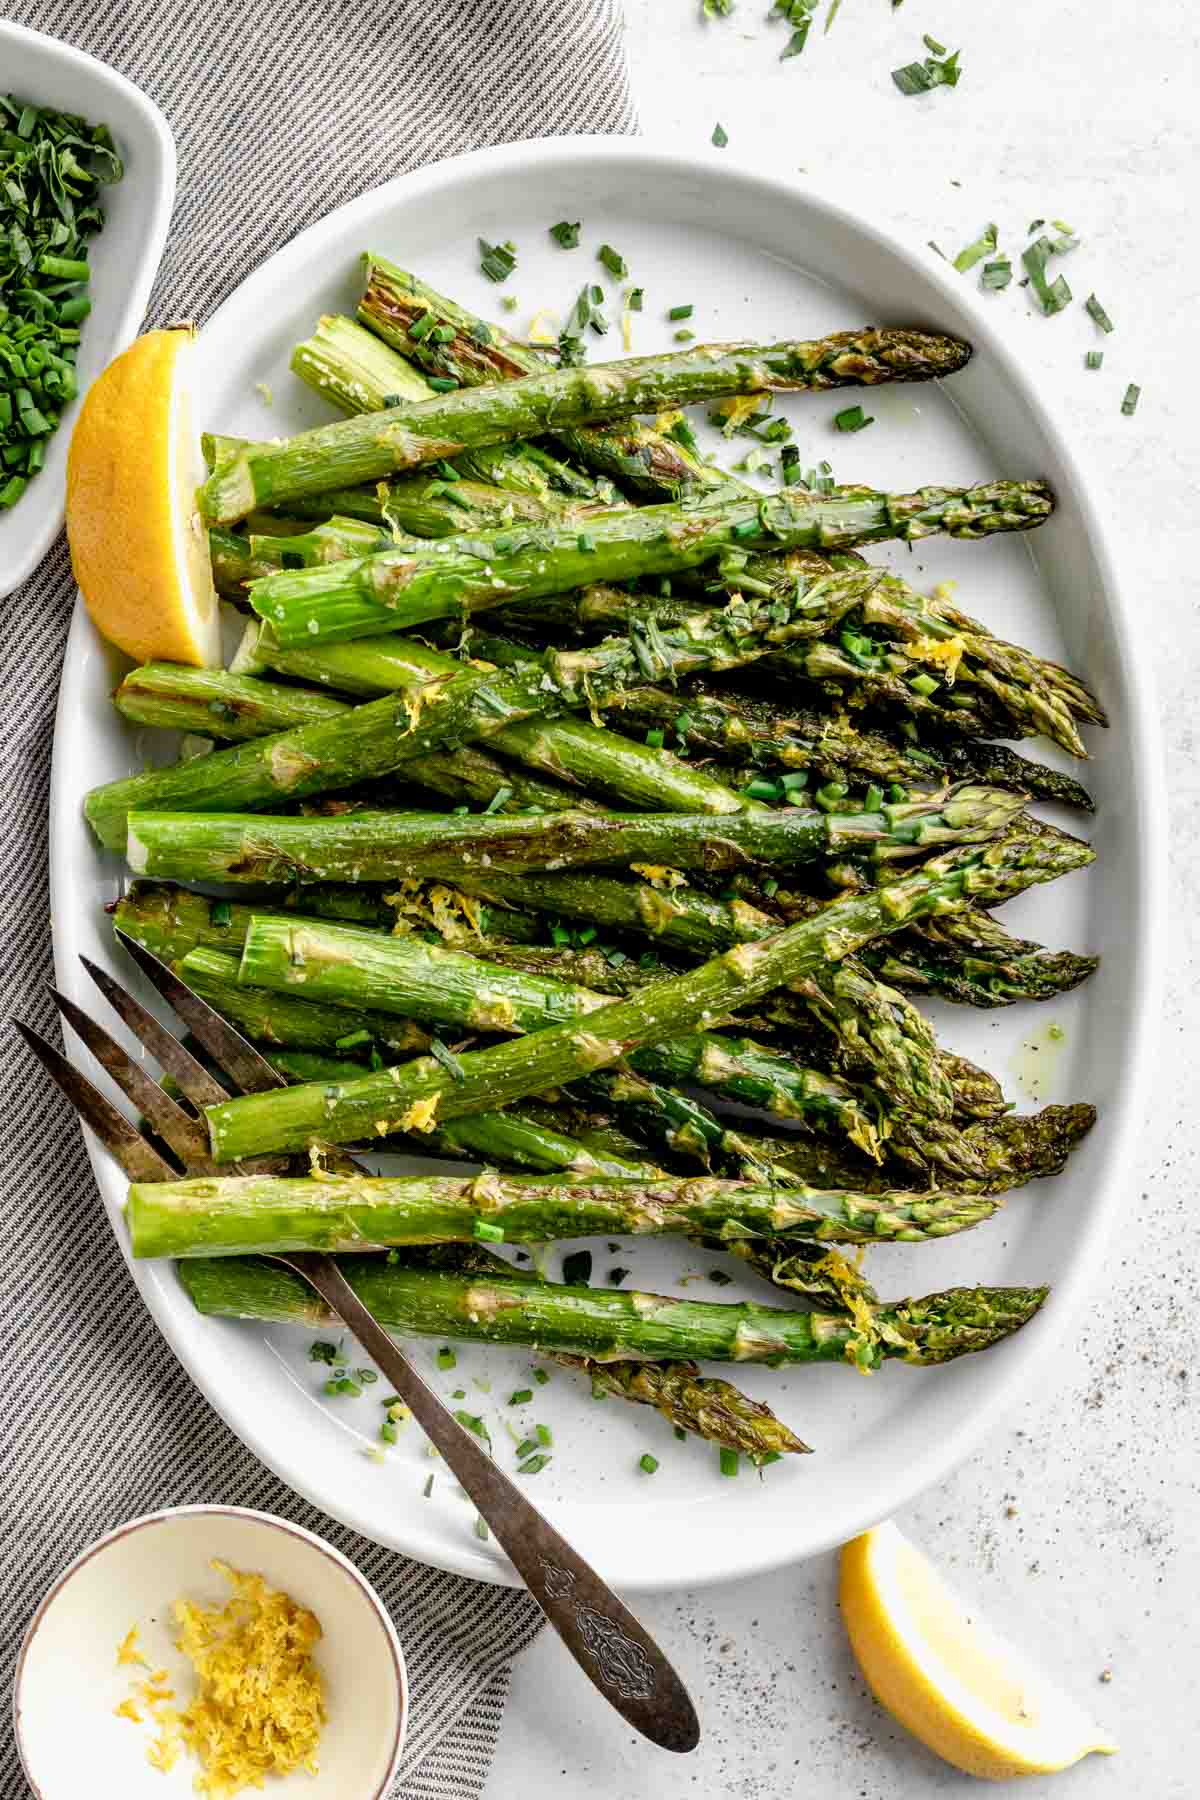 Roasted Asparagus with Lemon and herbs